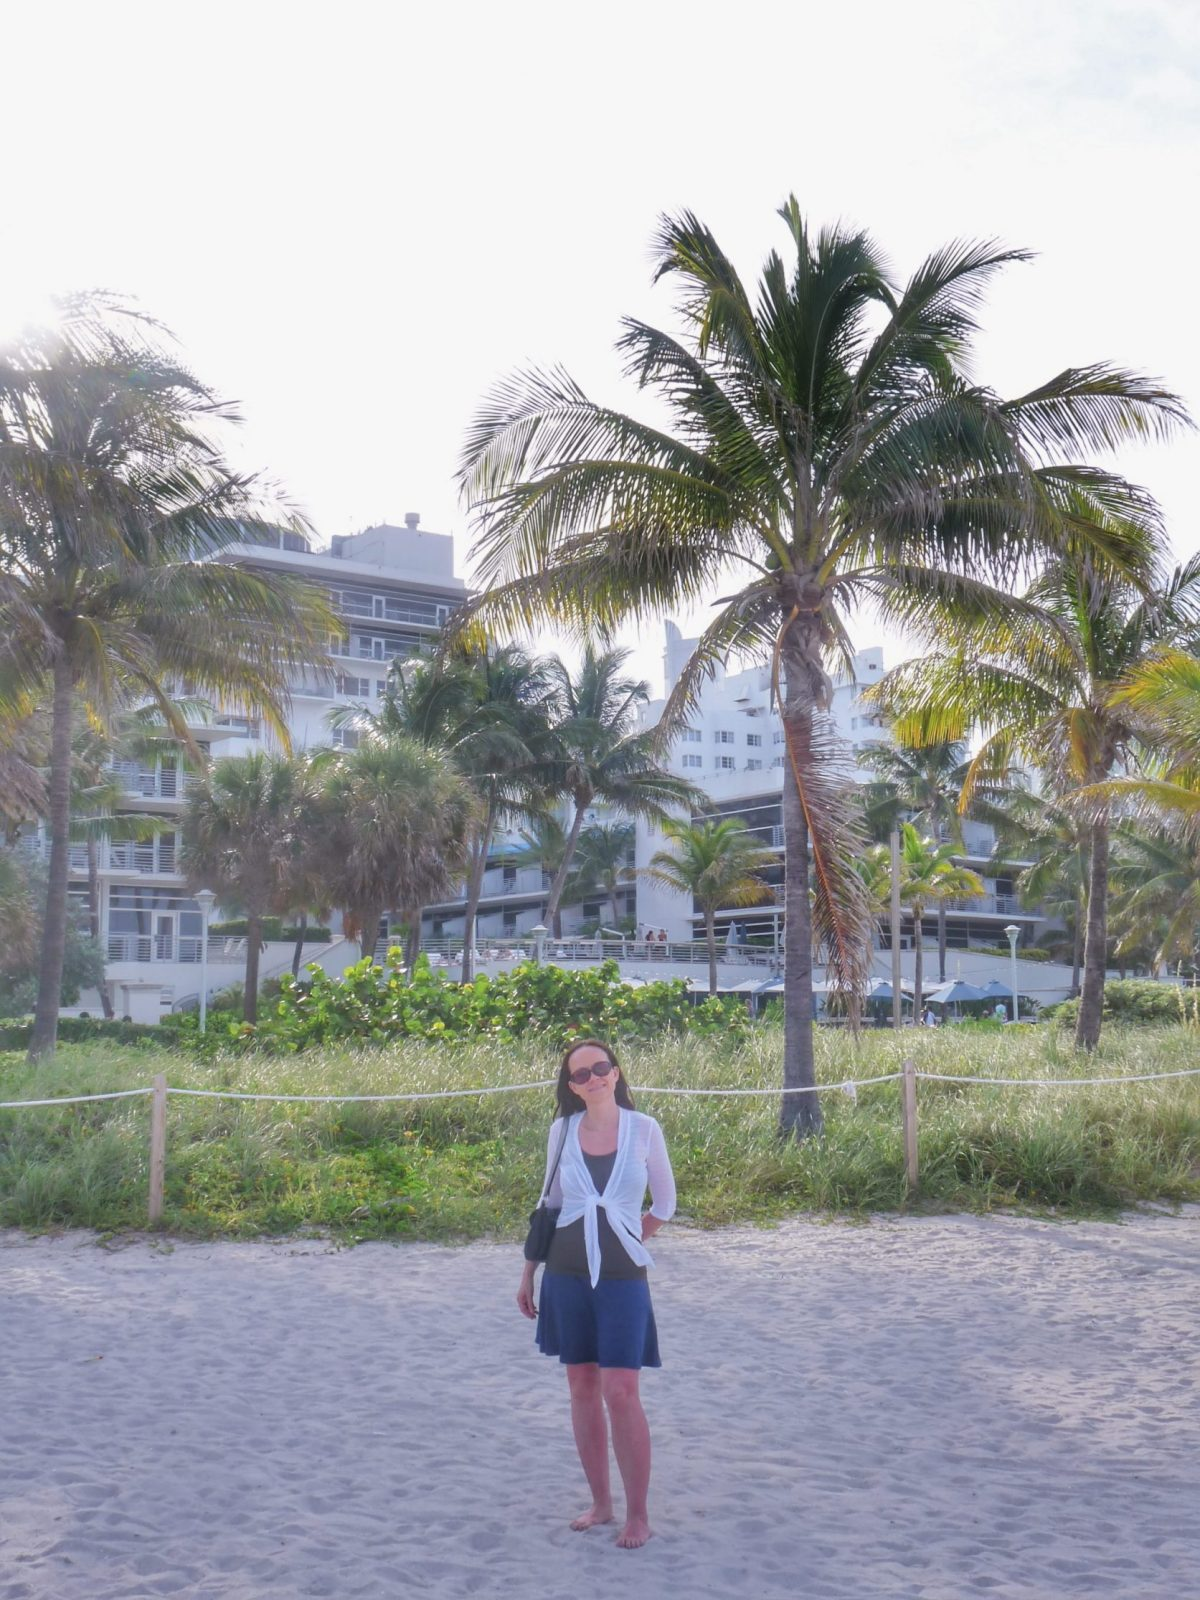 How to see South Beach Miami on a budget